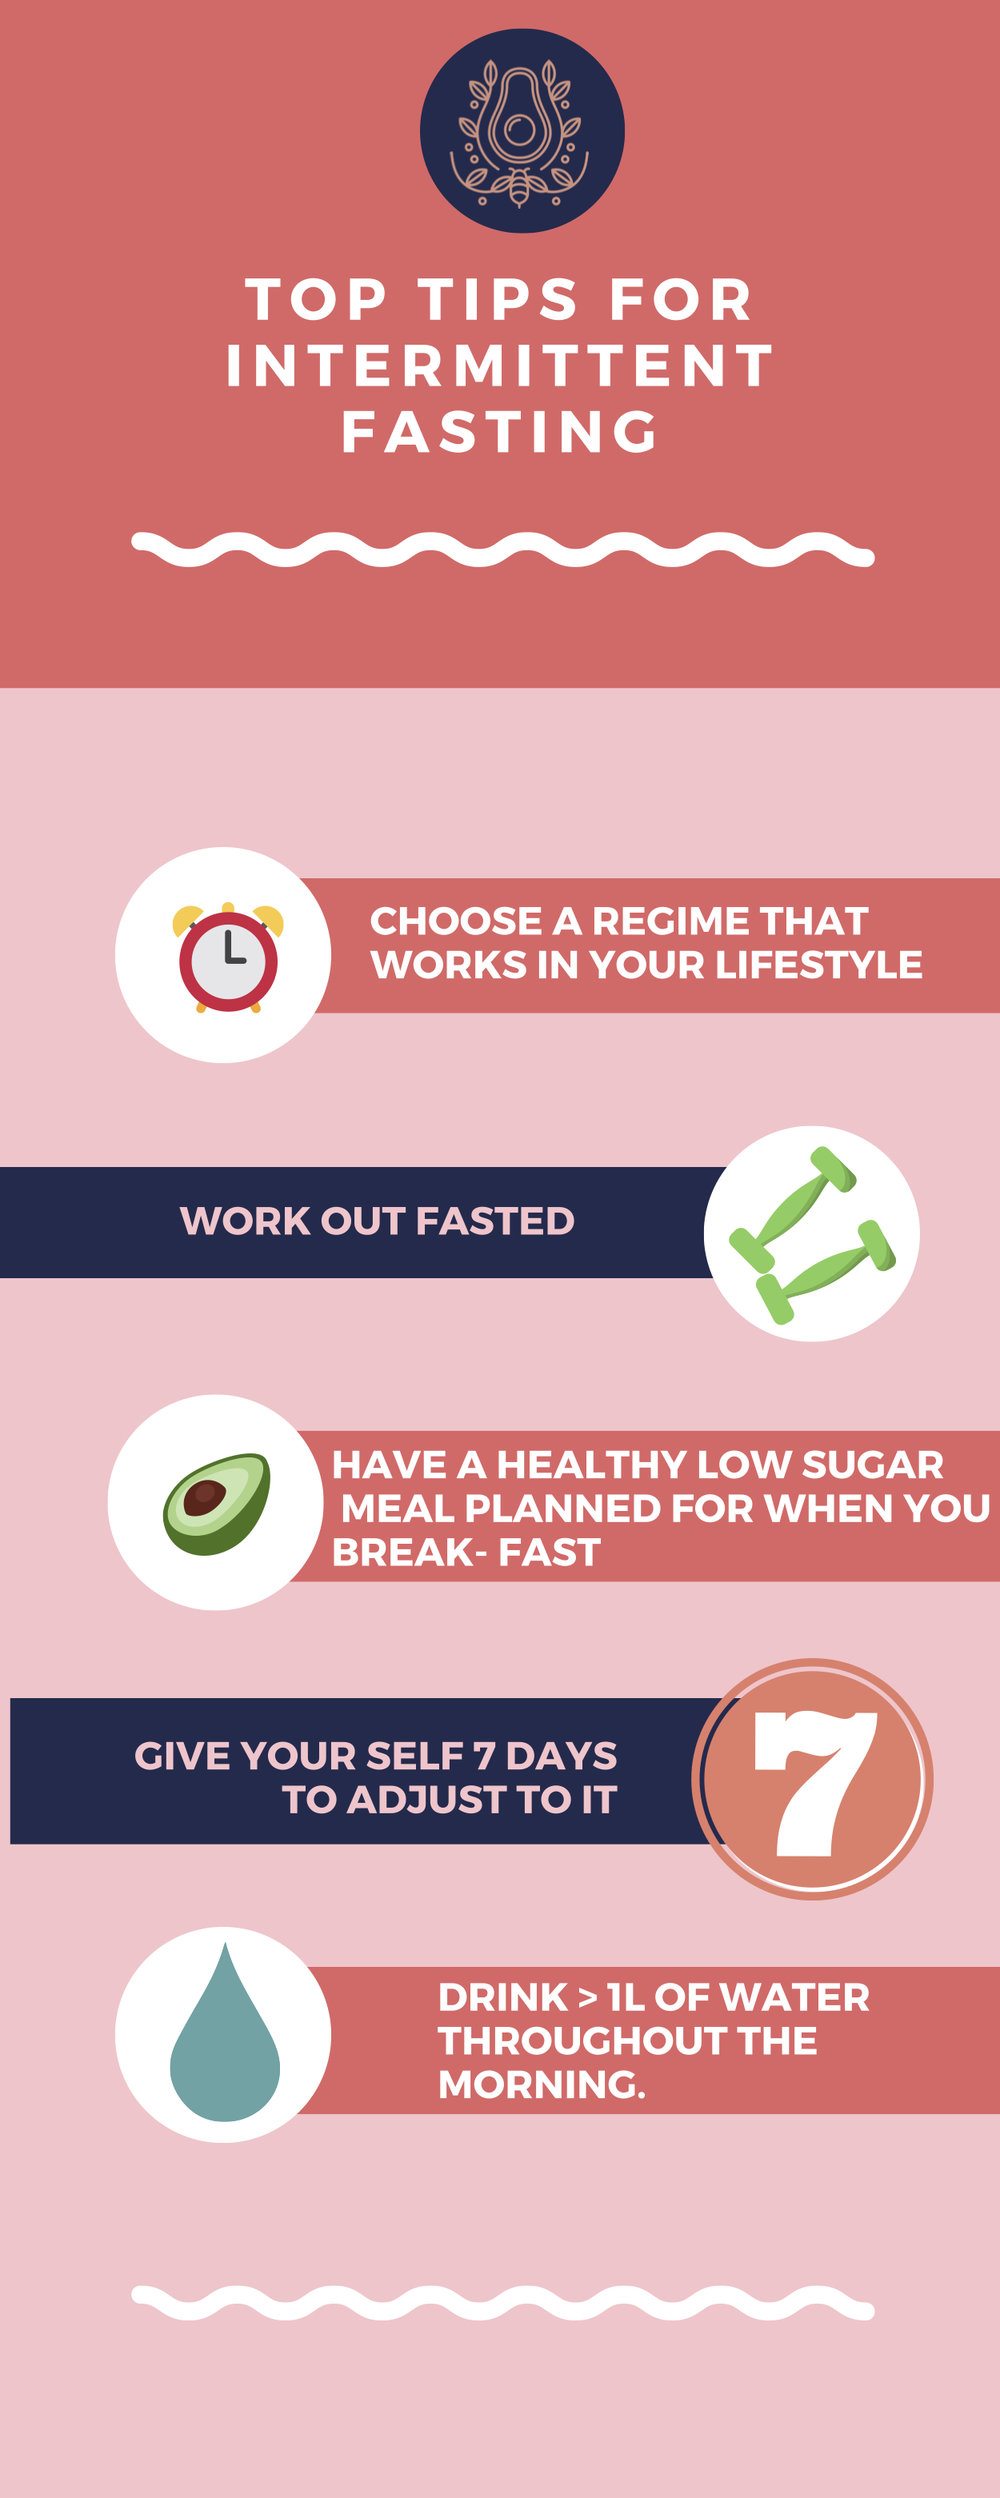 Top Tips For Intermittent Fasting Jpg